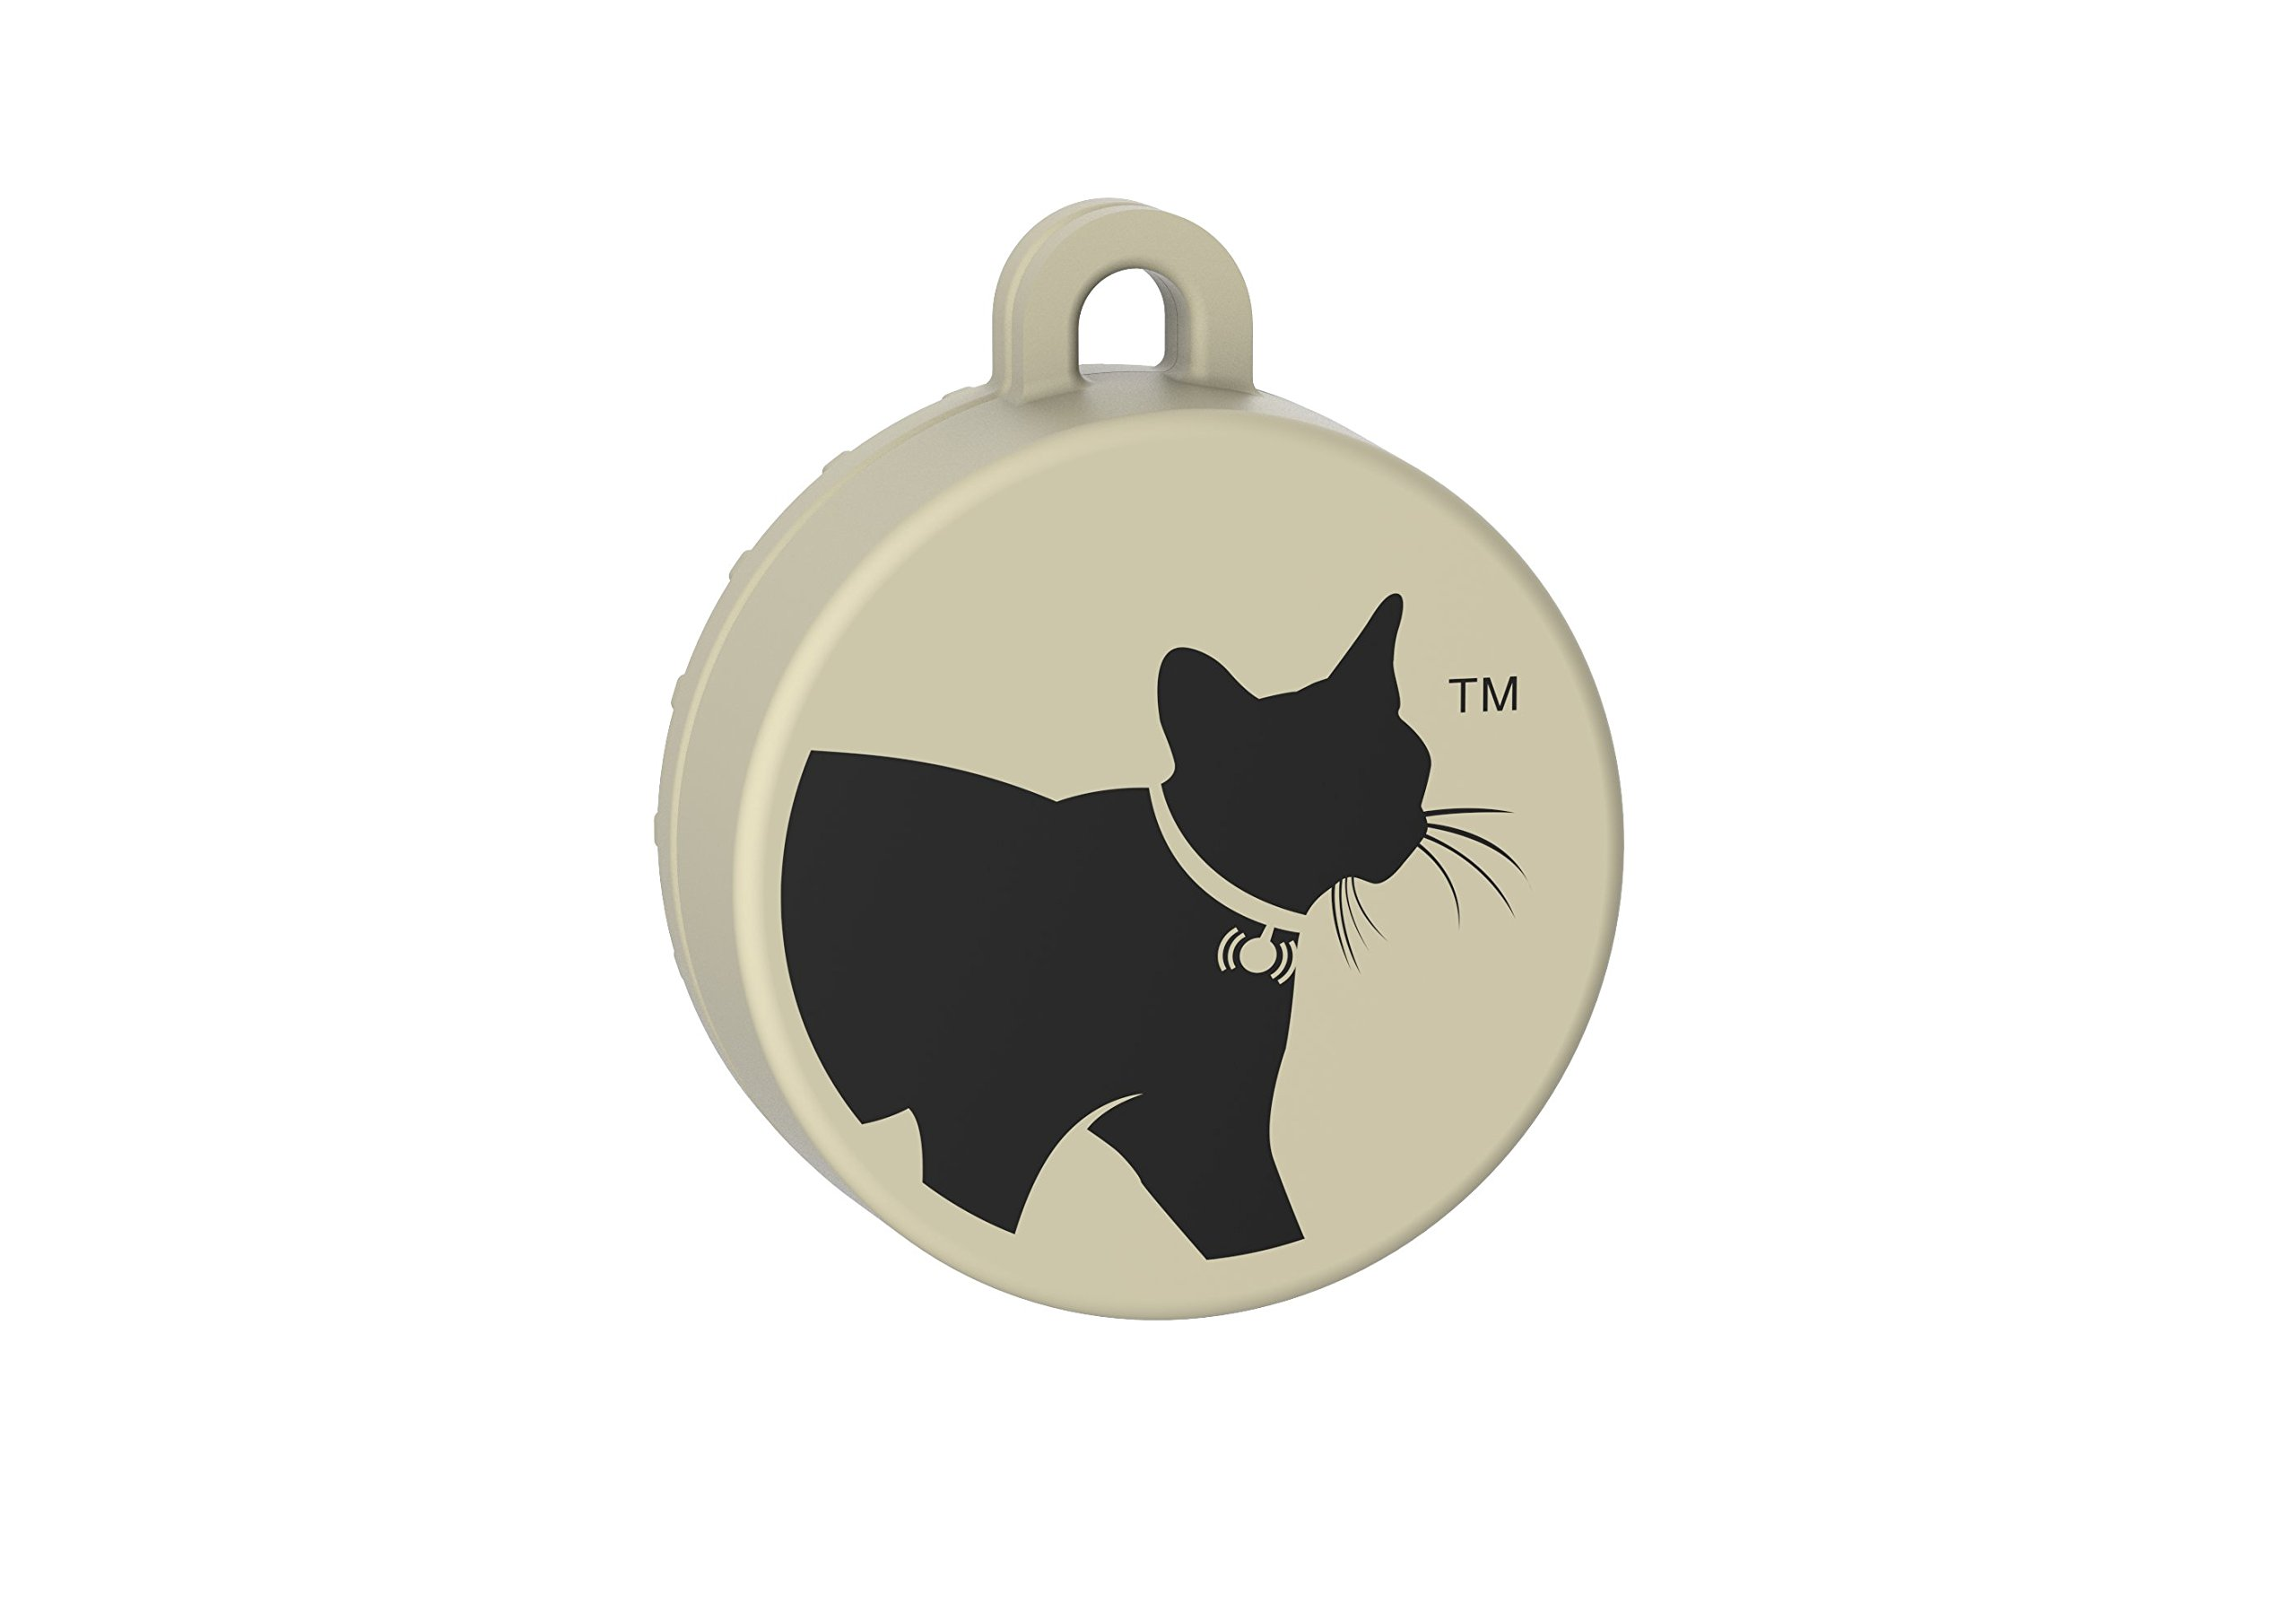 CAT TAILER The Small and Light Bluetooth Waterproof Cat Tracker with 328 ft Range and 6 Month Battery Life | NOT a GPS…